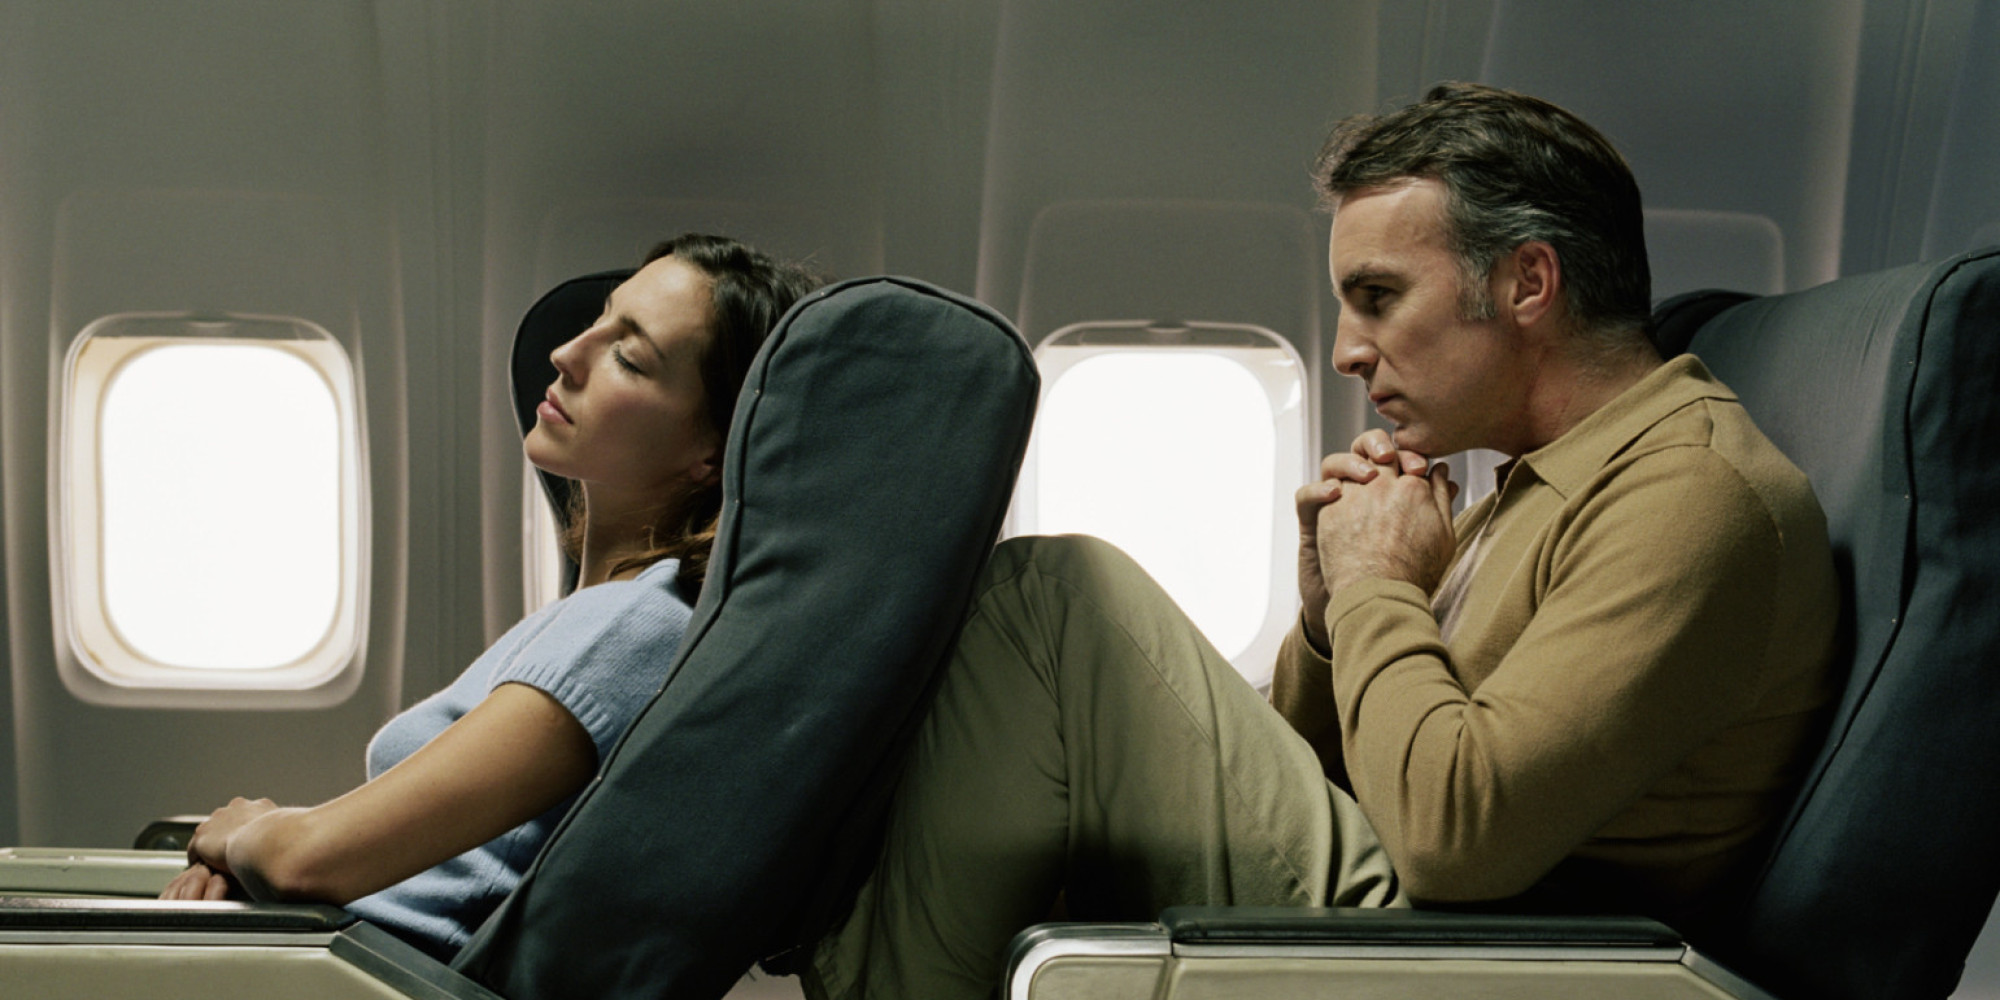 sc 1 st  Huffington Post & Americans Are On Team Recliner In The Airplane Seat Wars | HuffPost islam-shia.org